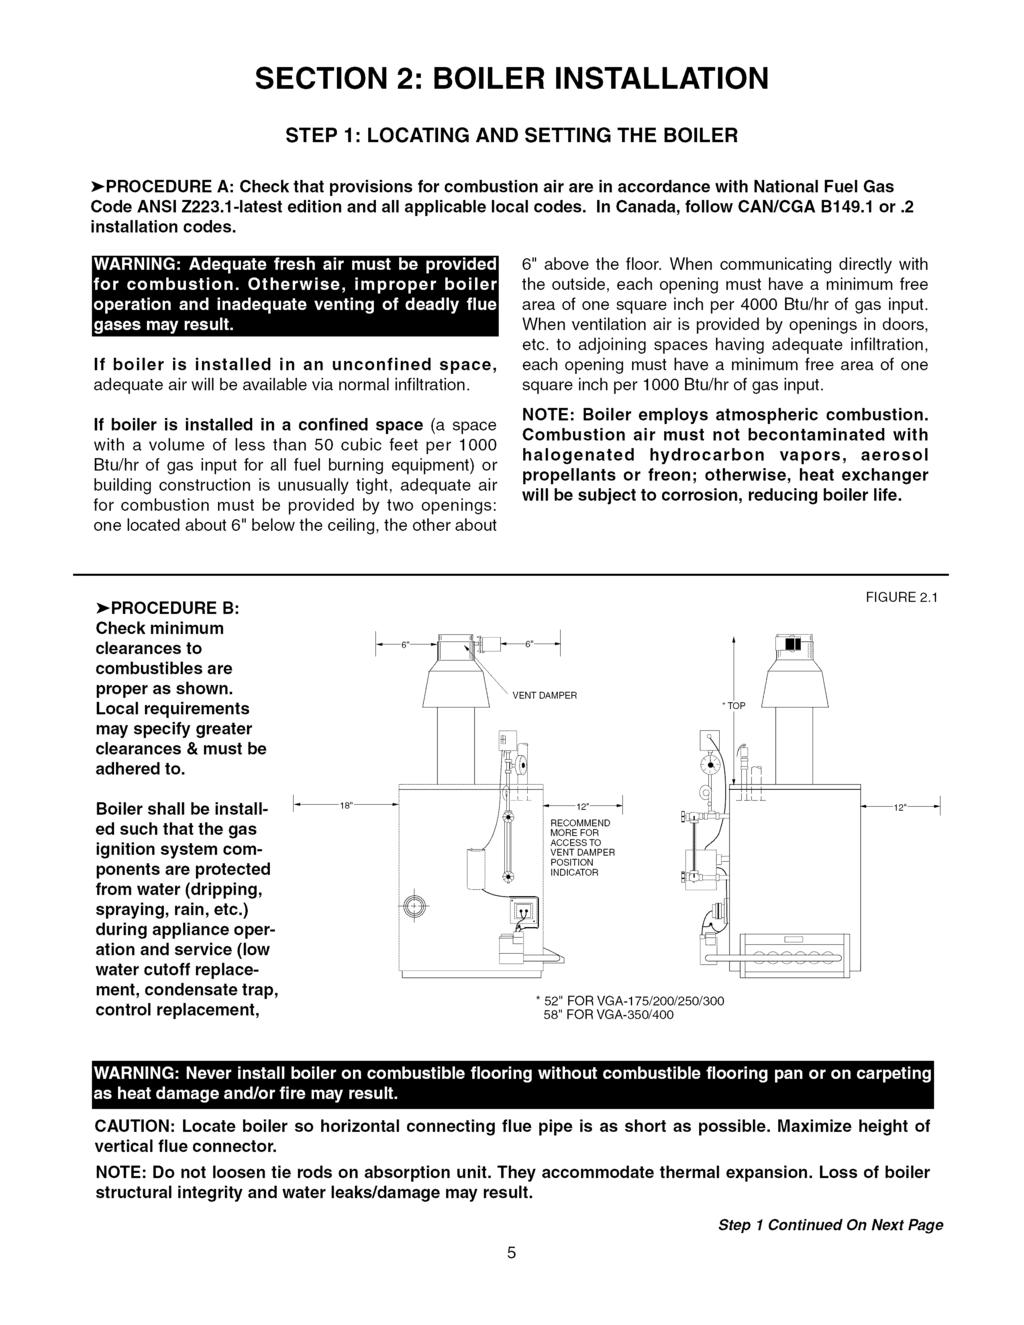 Hydrotherm Vgab Series Installation Operation Maintenance Manual Parker Boiler Wiring Diagram Section Step Locating And Setting The Procedure A Check That